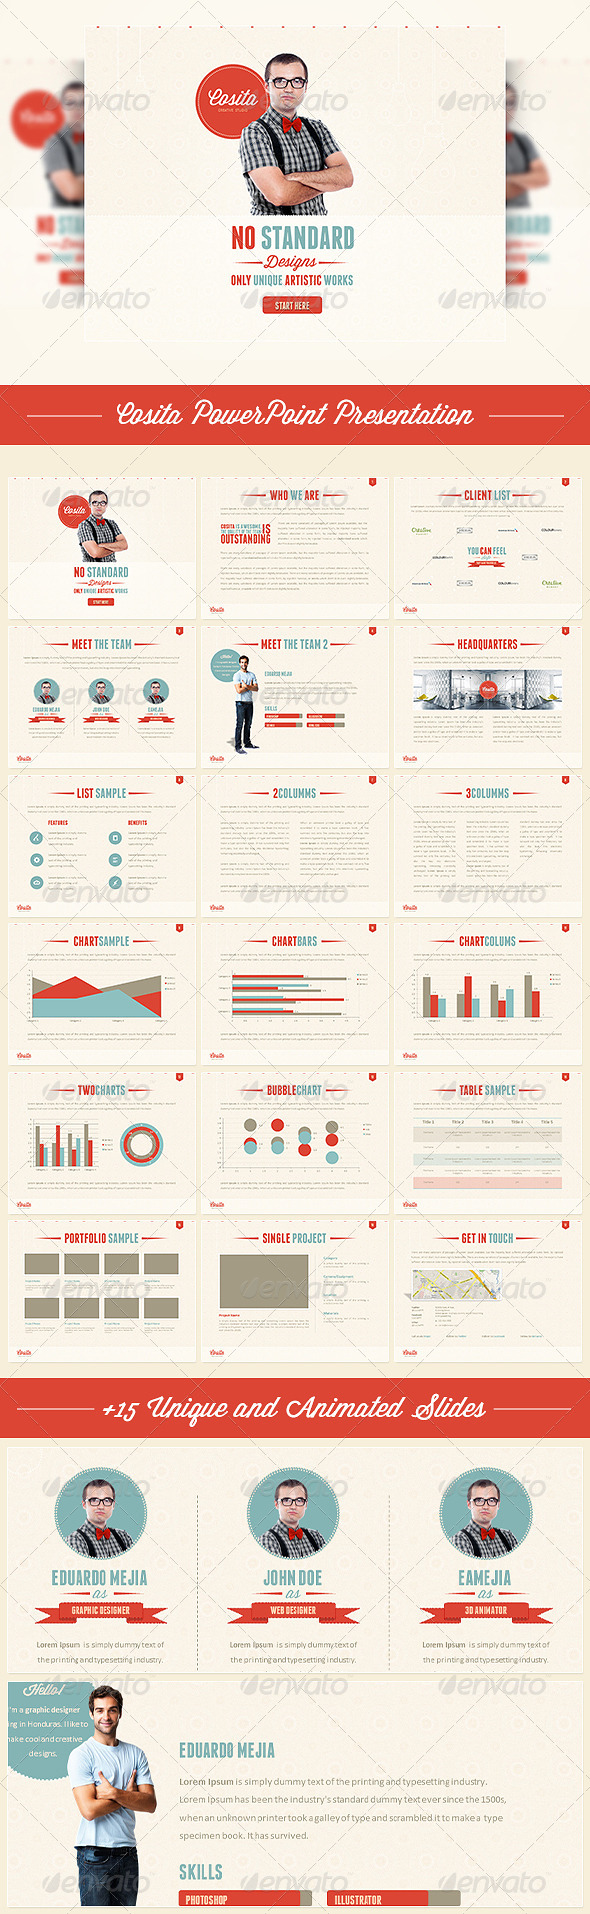 GraphicRiver Cosita PowerPoint Presentation 4085289